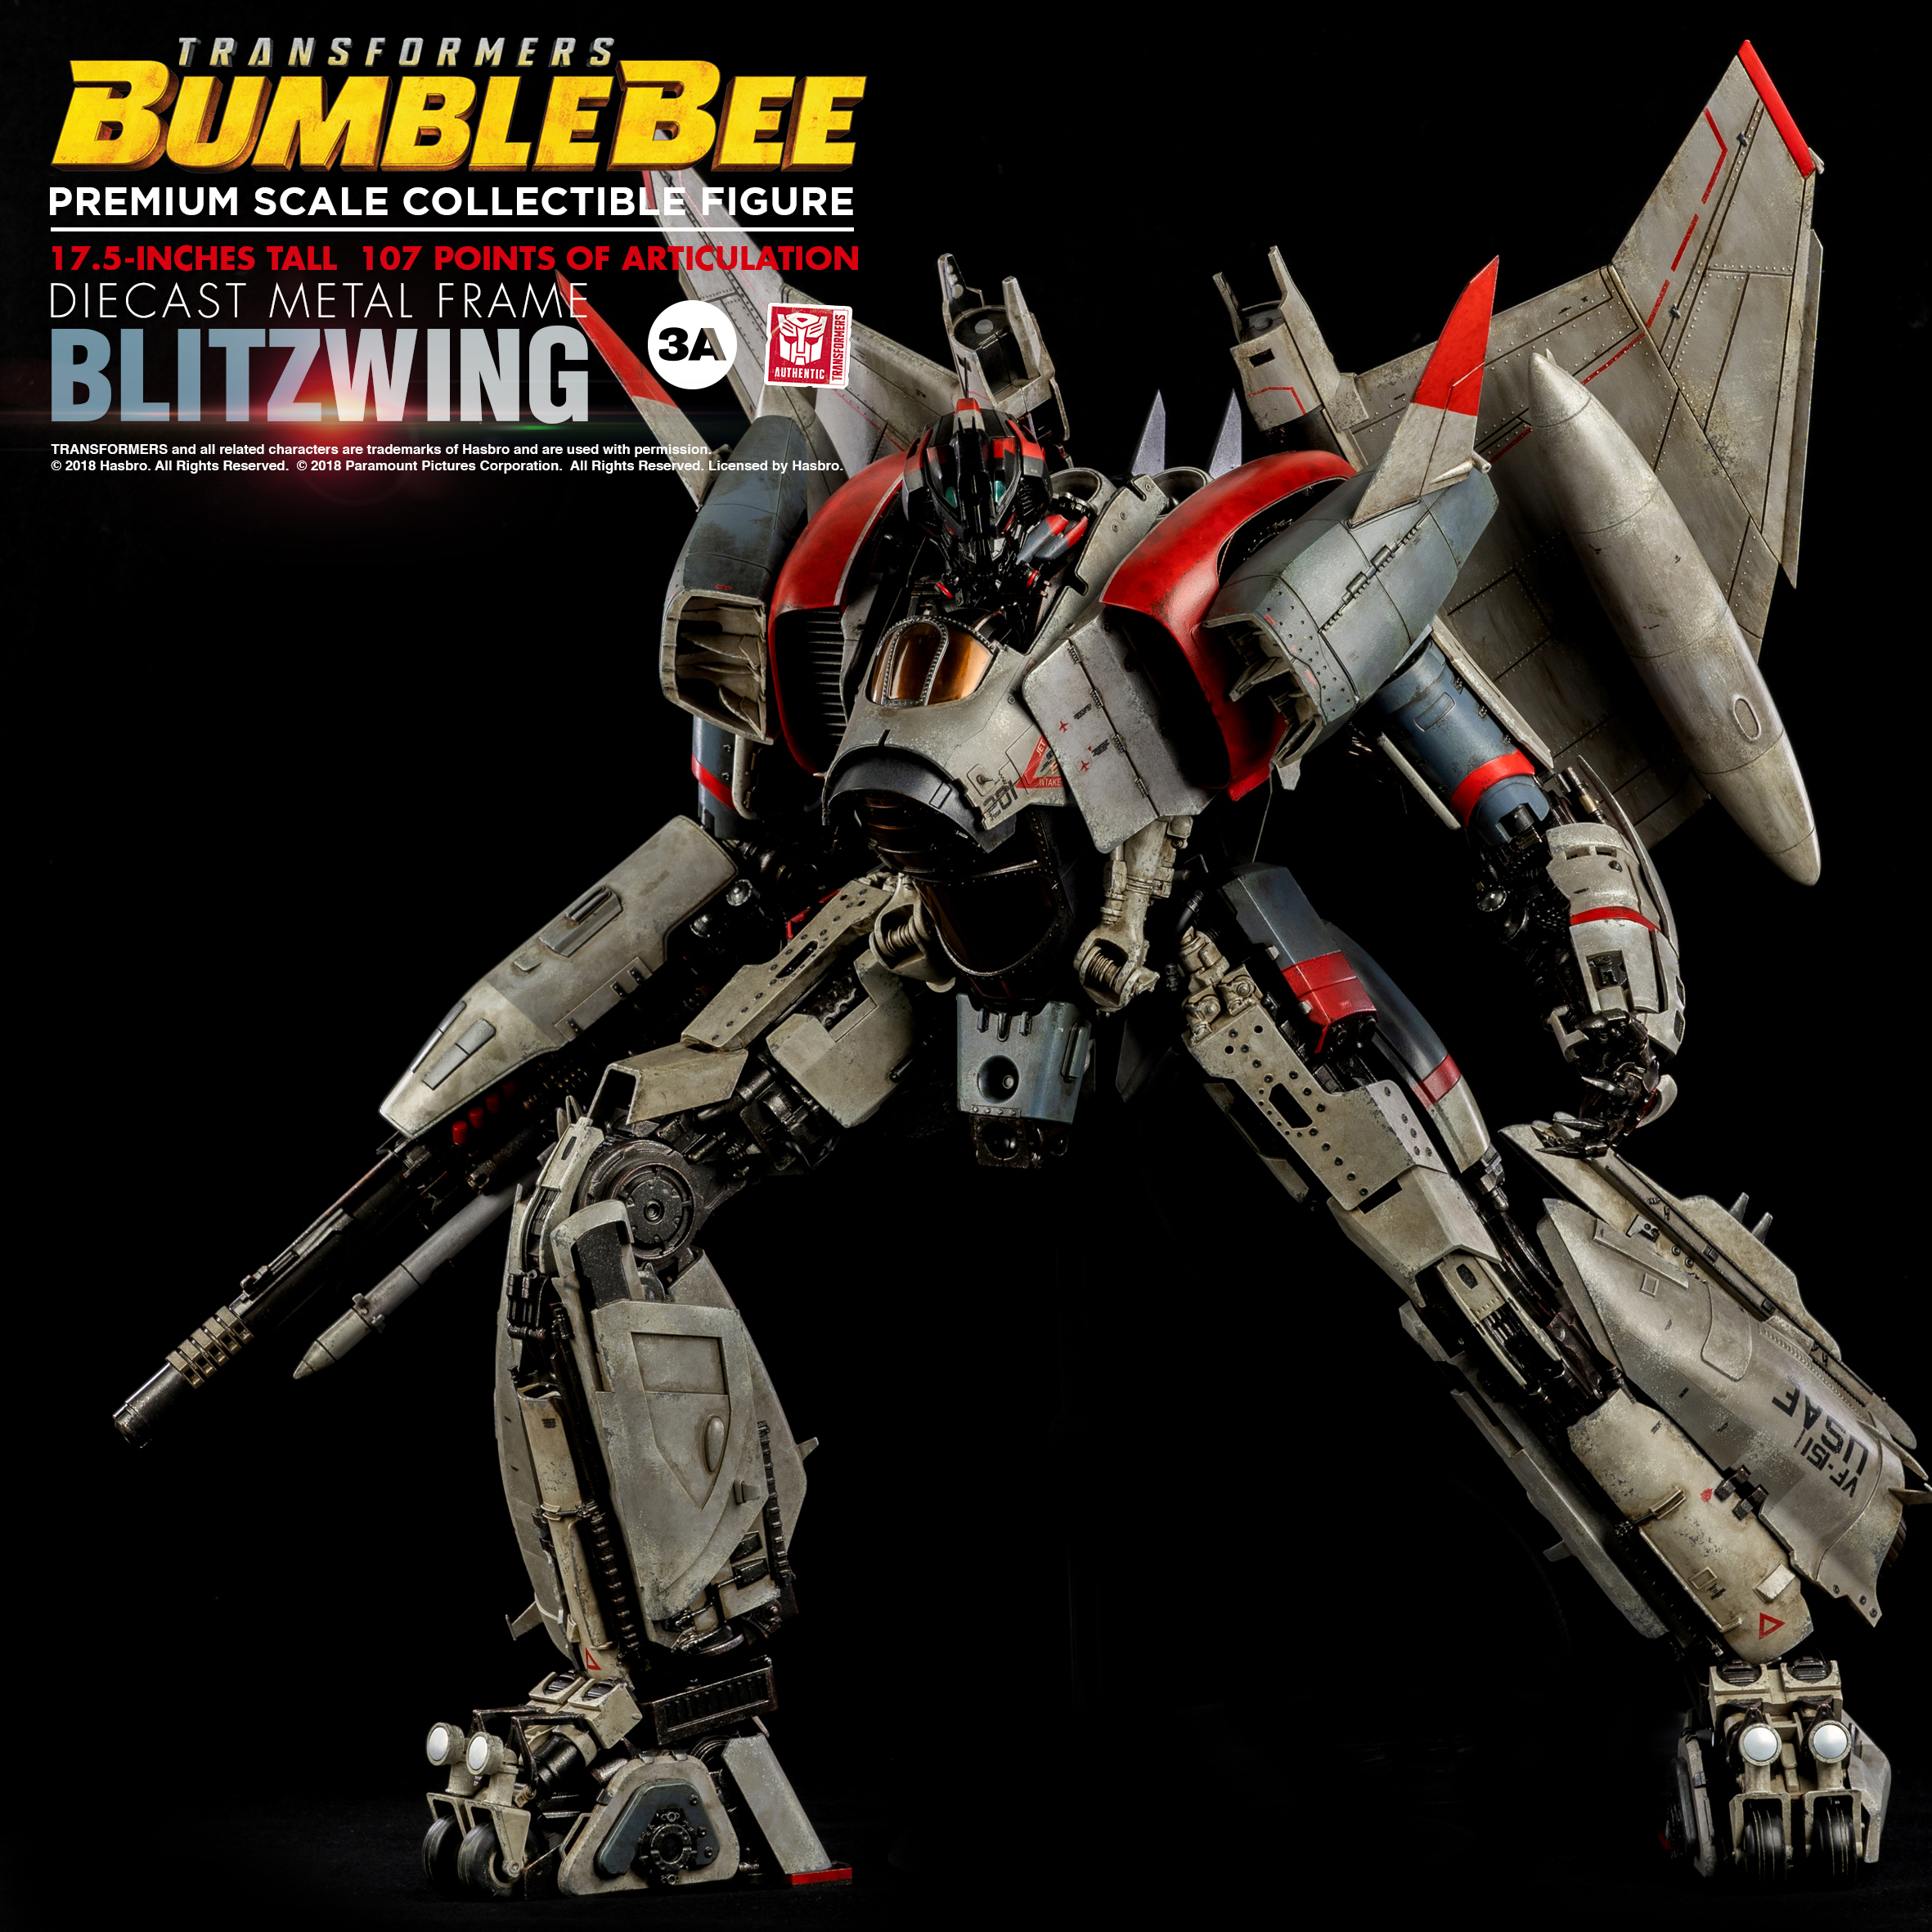 Blitzwing_PM_1043.jpg